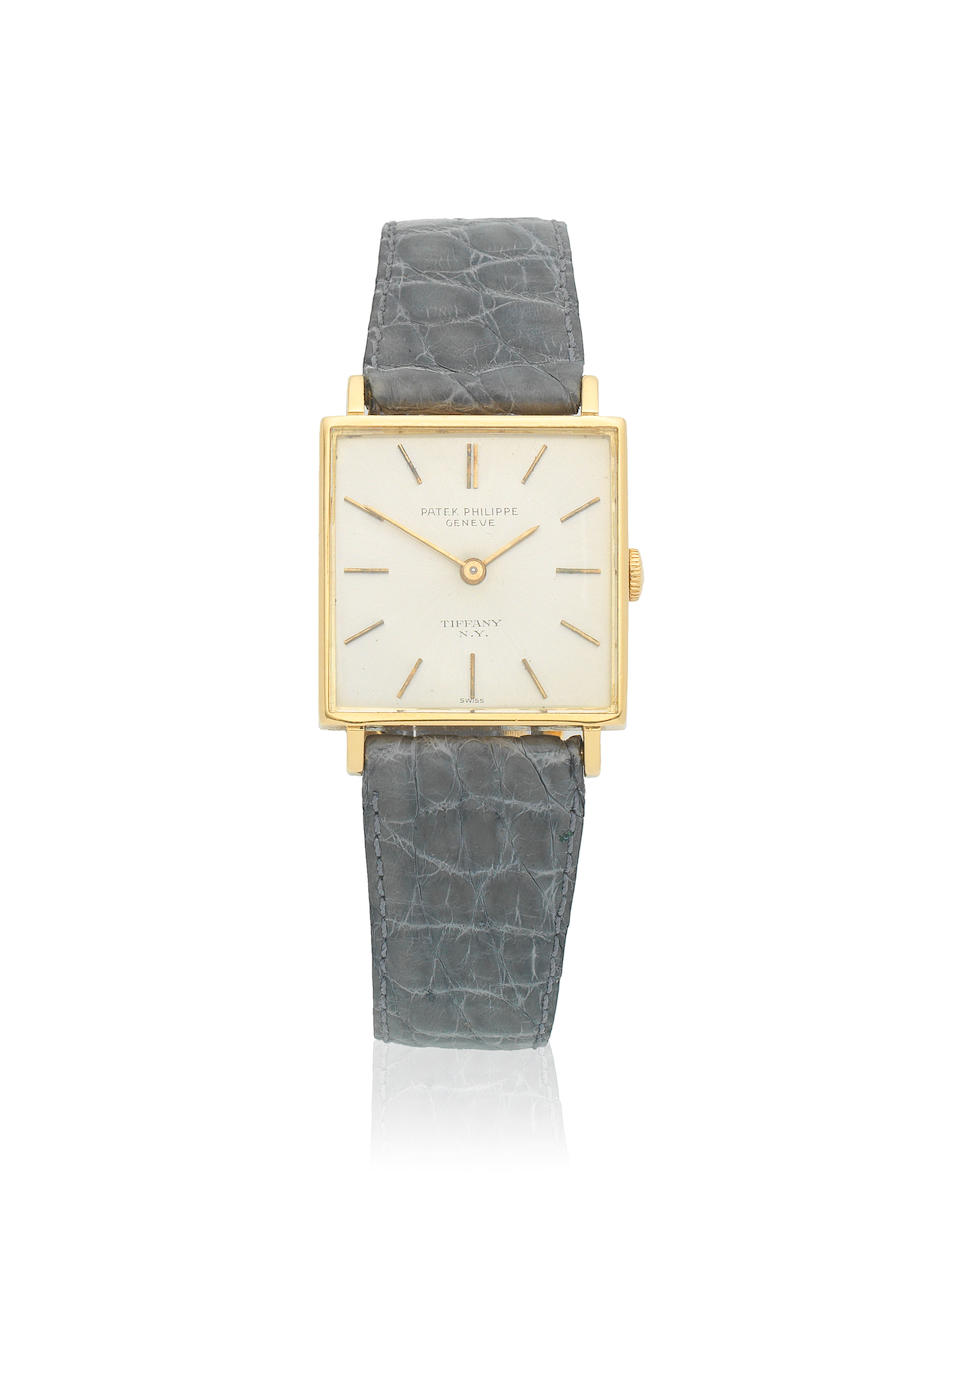 Patek Philippe. An 18K gold manual wind square wristwatch Ref: 3430, Circa 1965